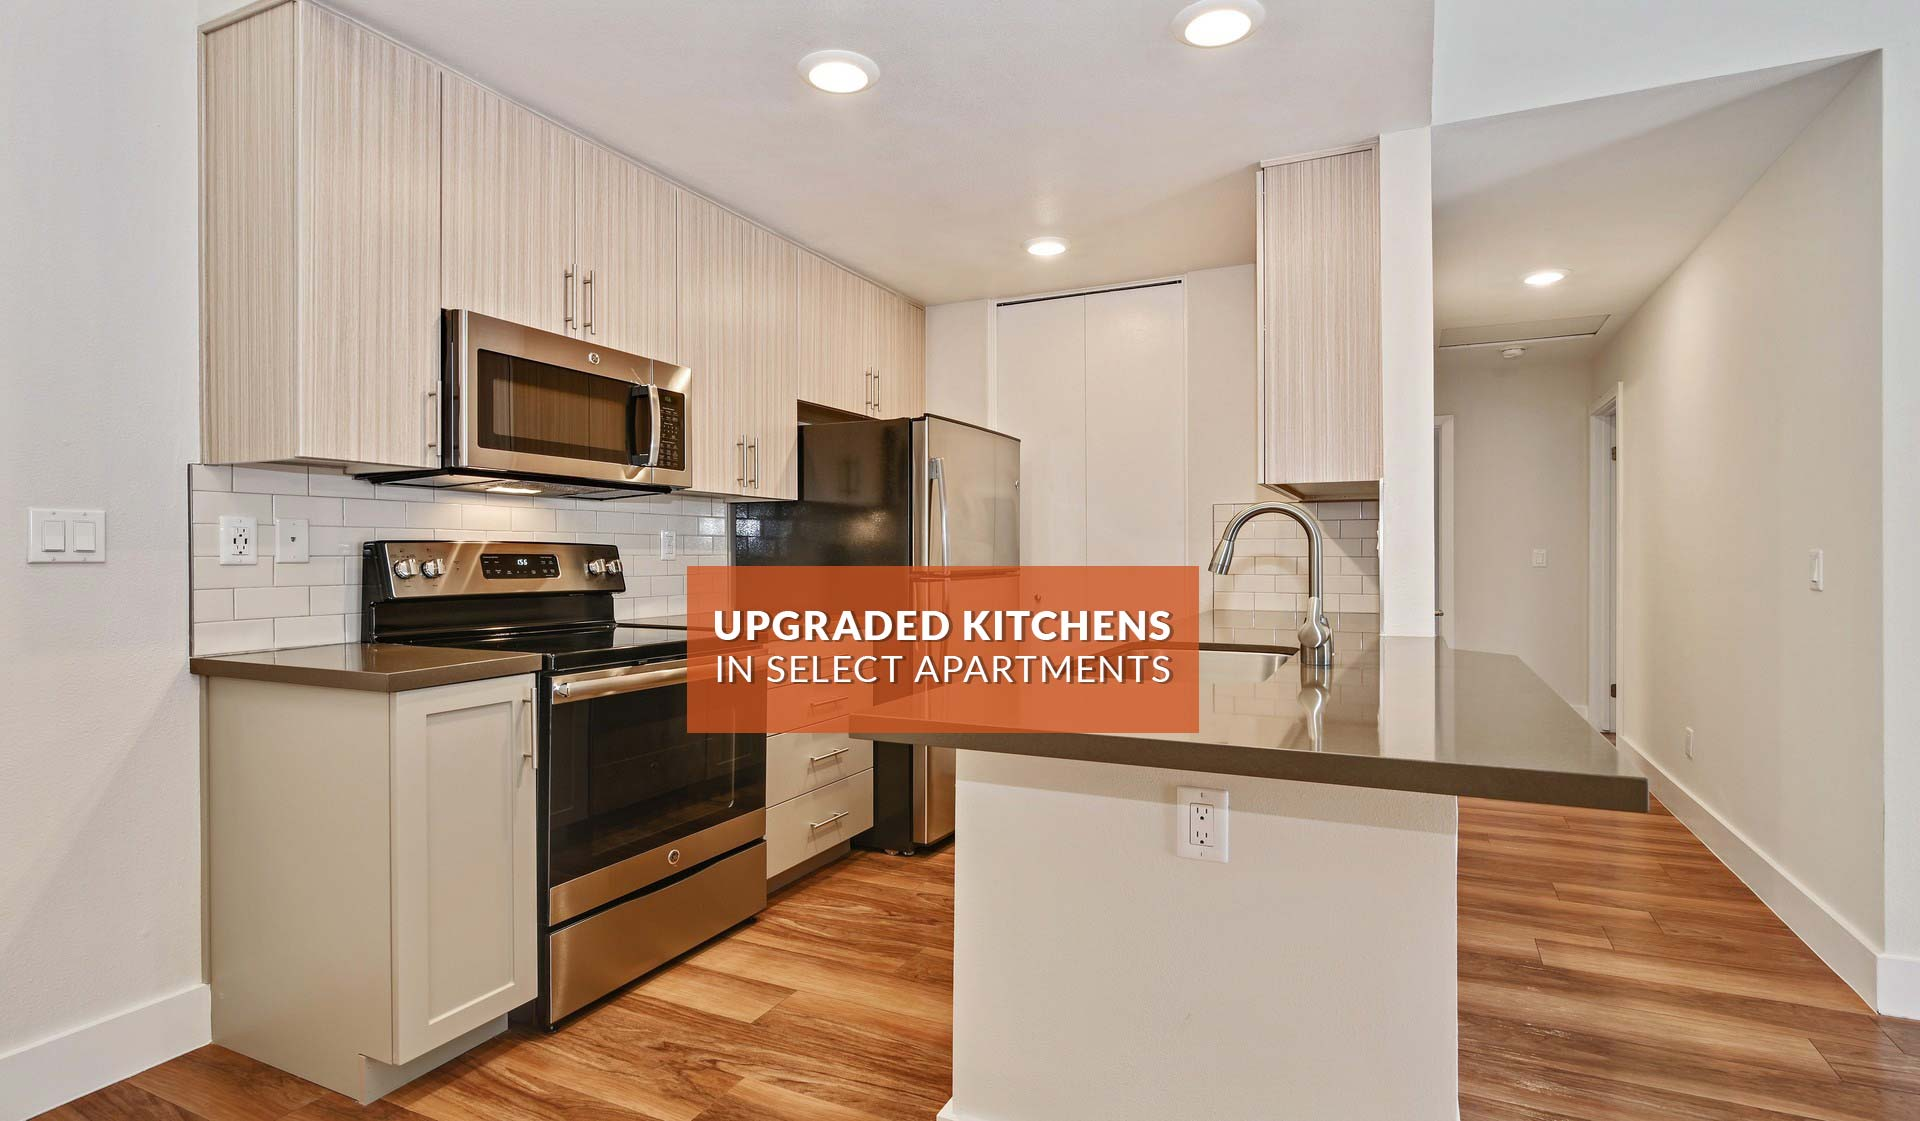 Island Club Apartments - Upgraded Kitchens - Oceanside, CA